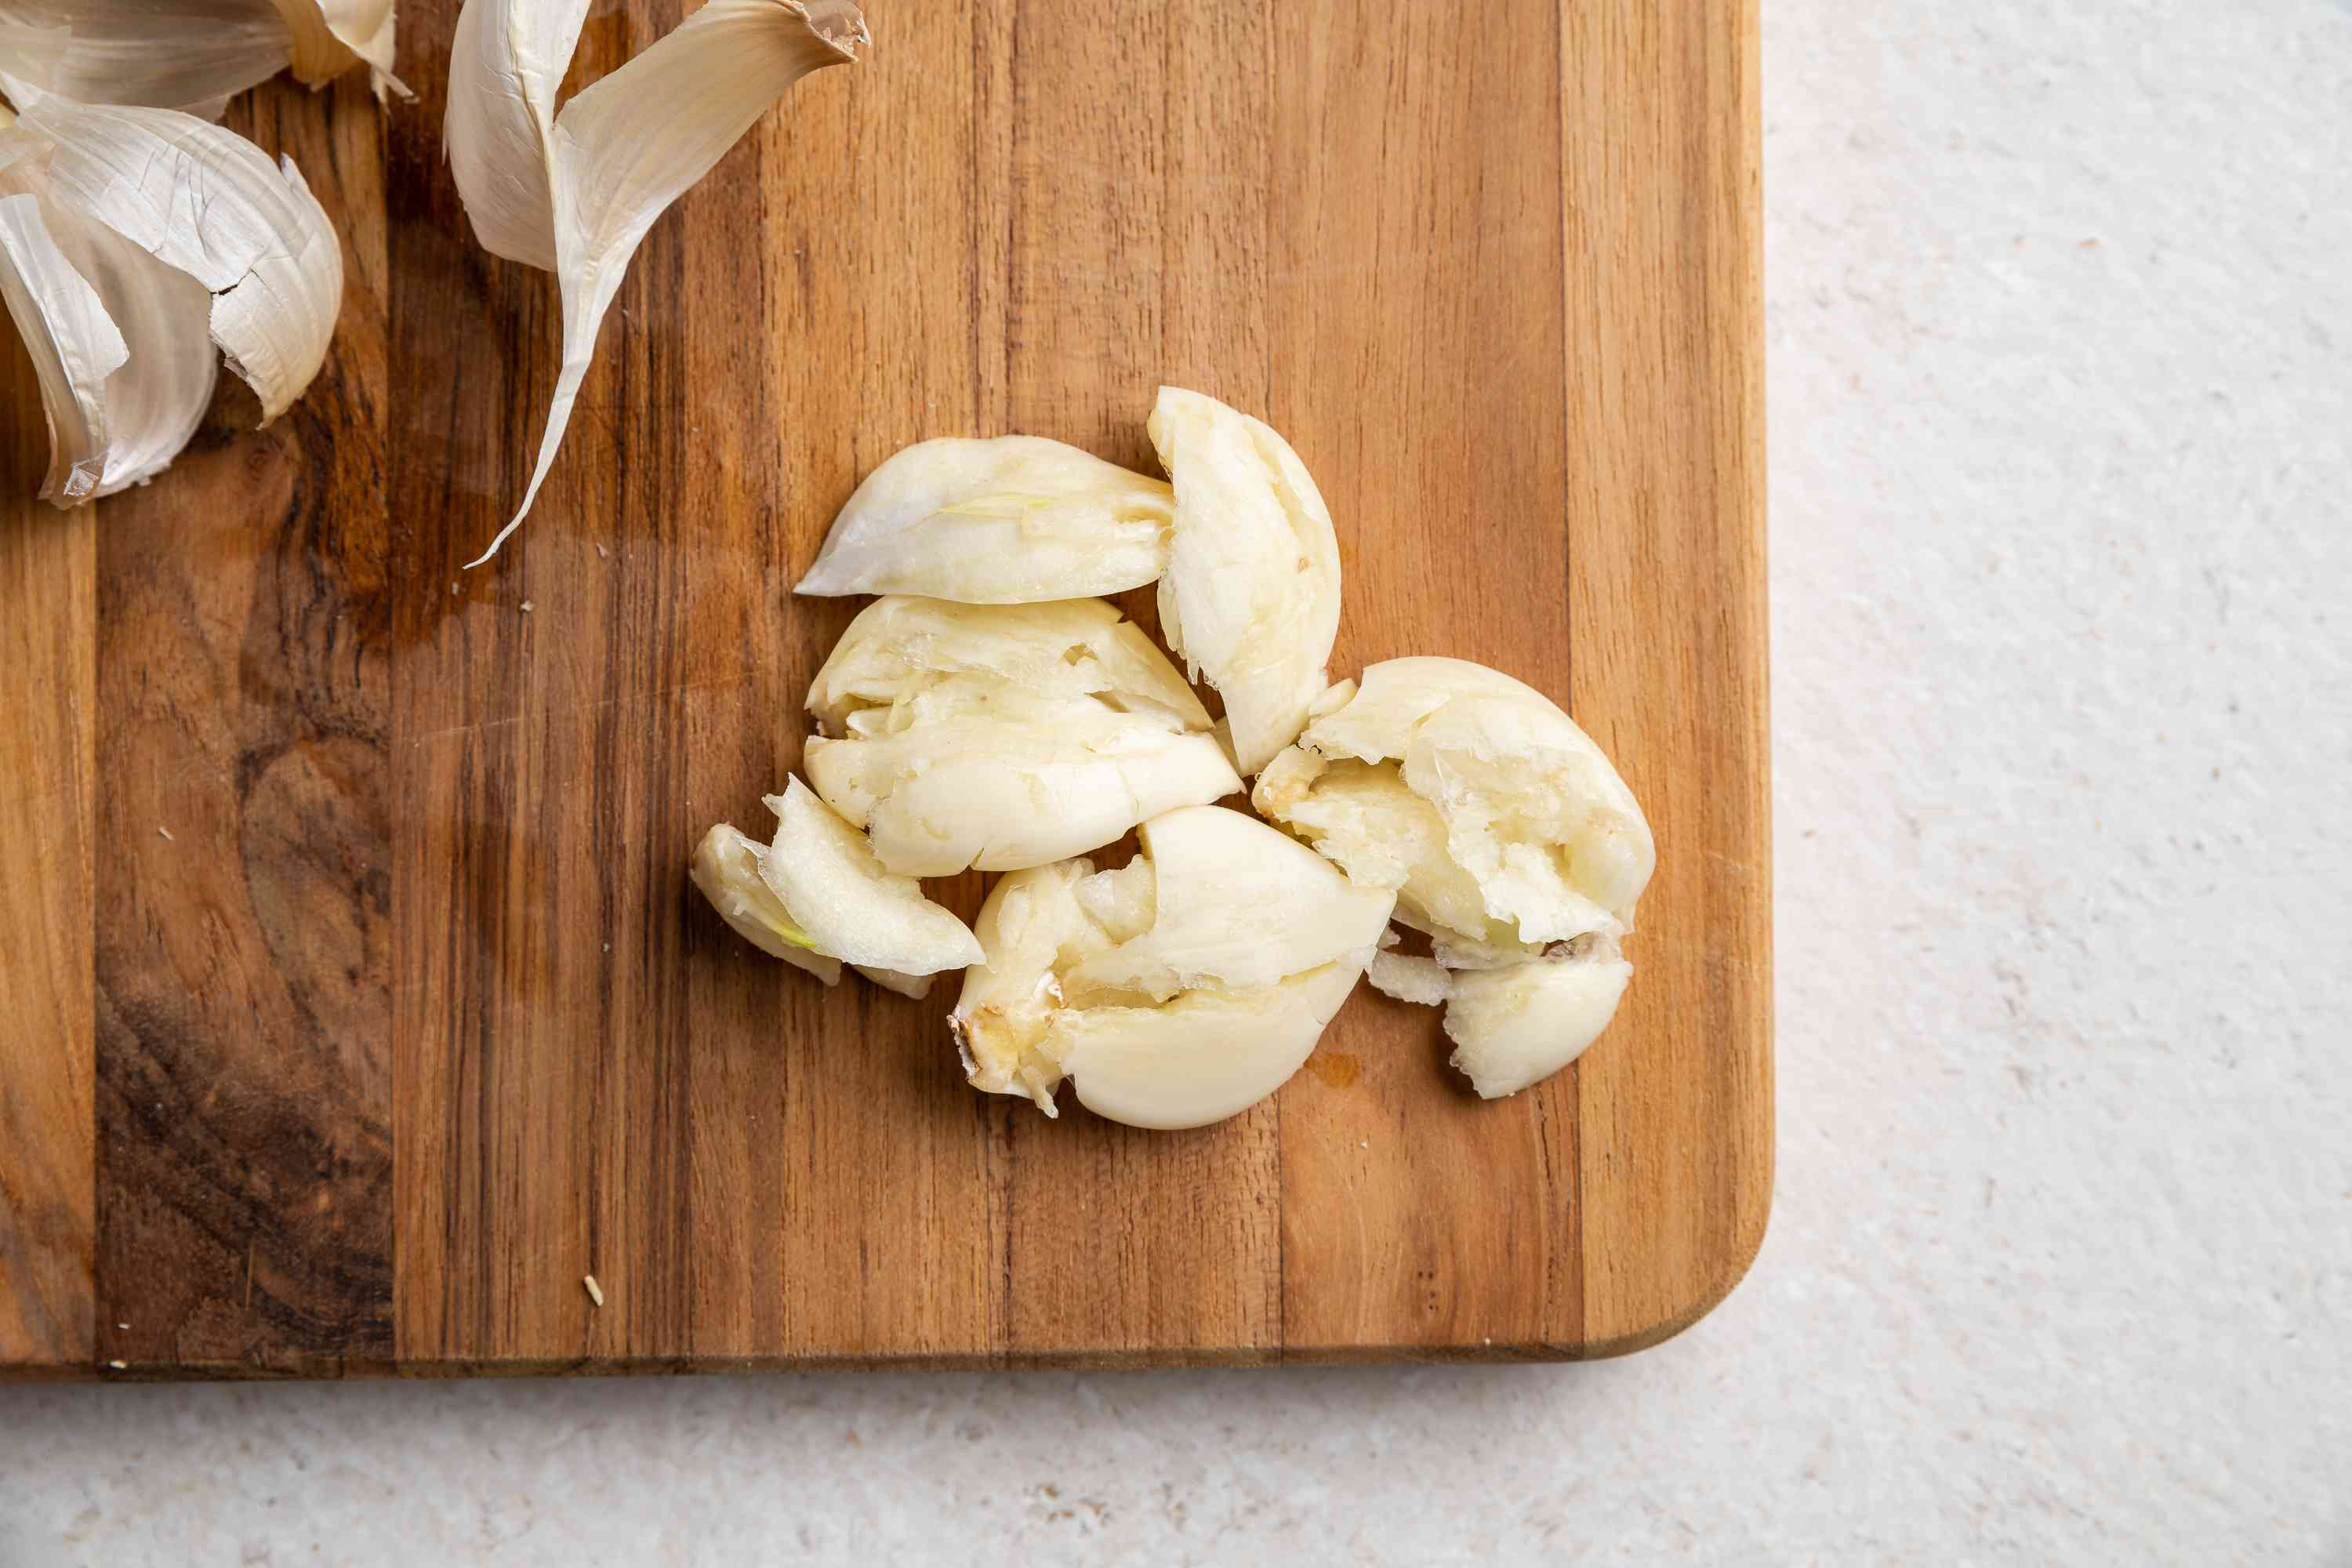 Smash the garlic cloves and discard the skins